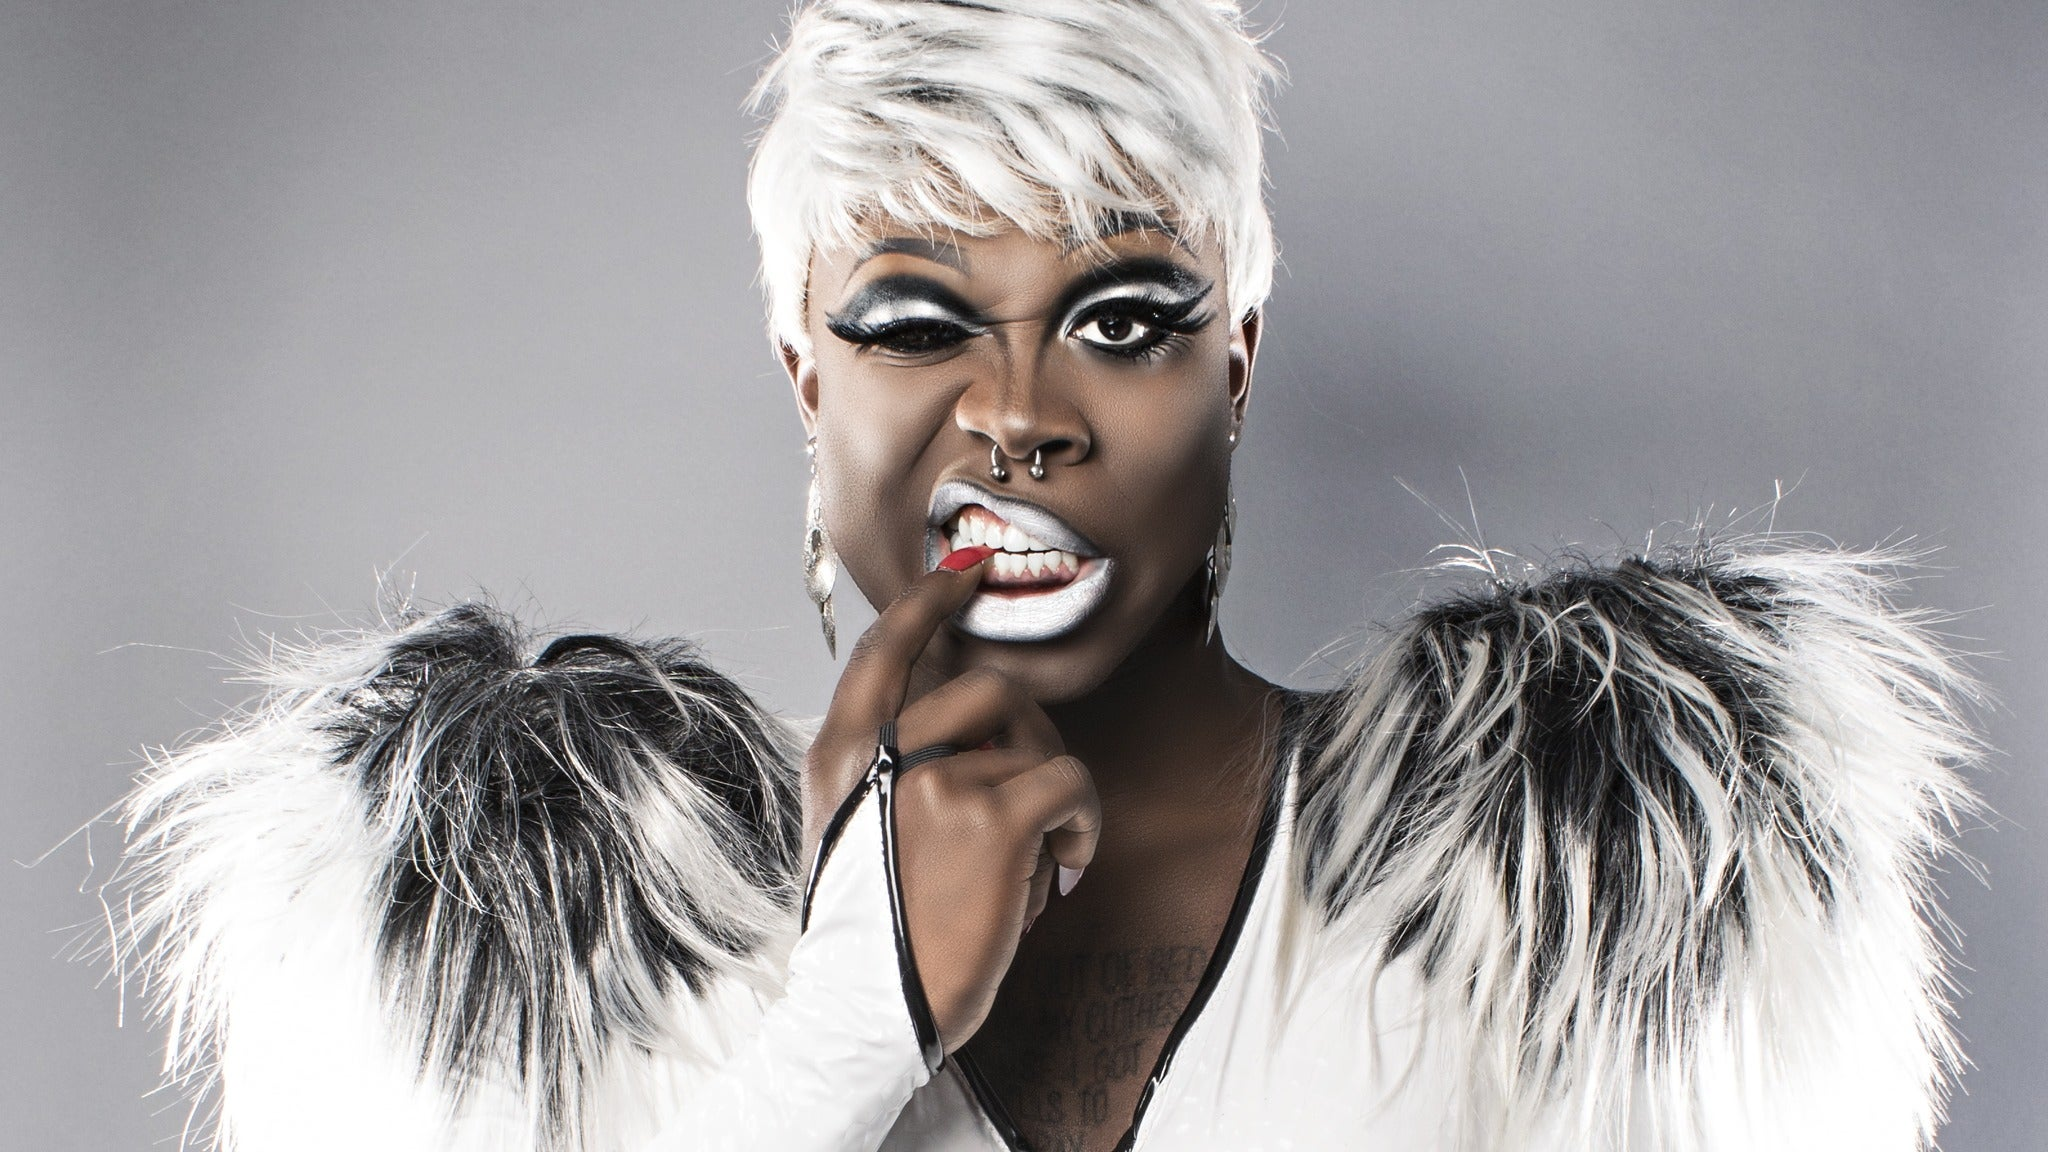 Bob the Drag Queen: On the Road Again at Brea Improv